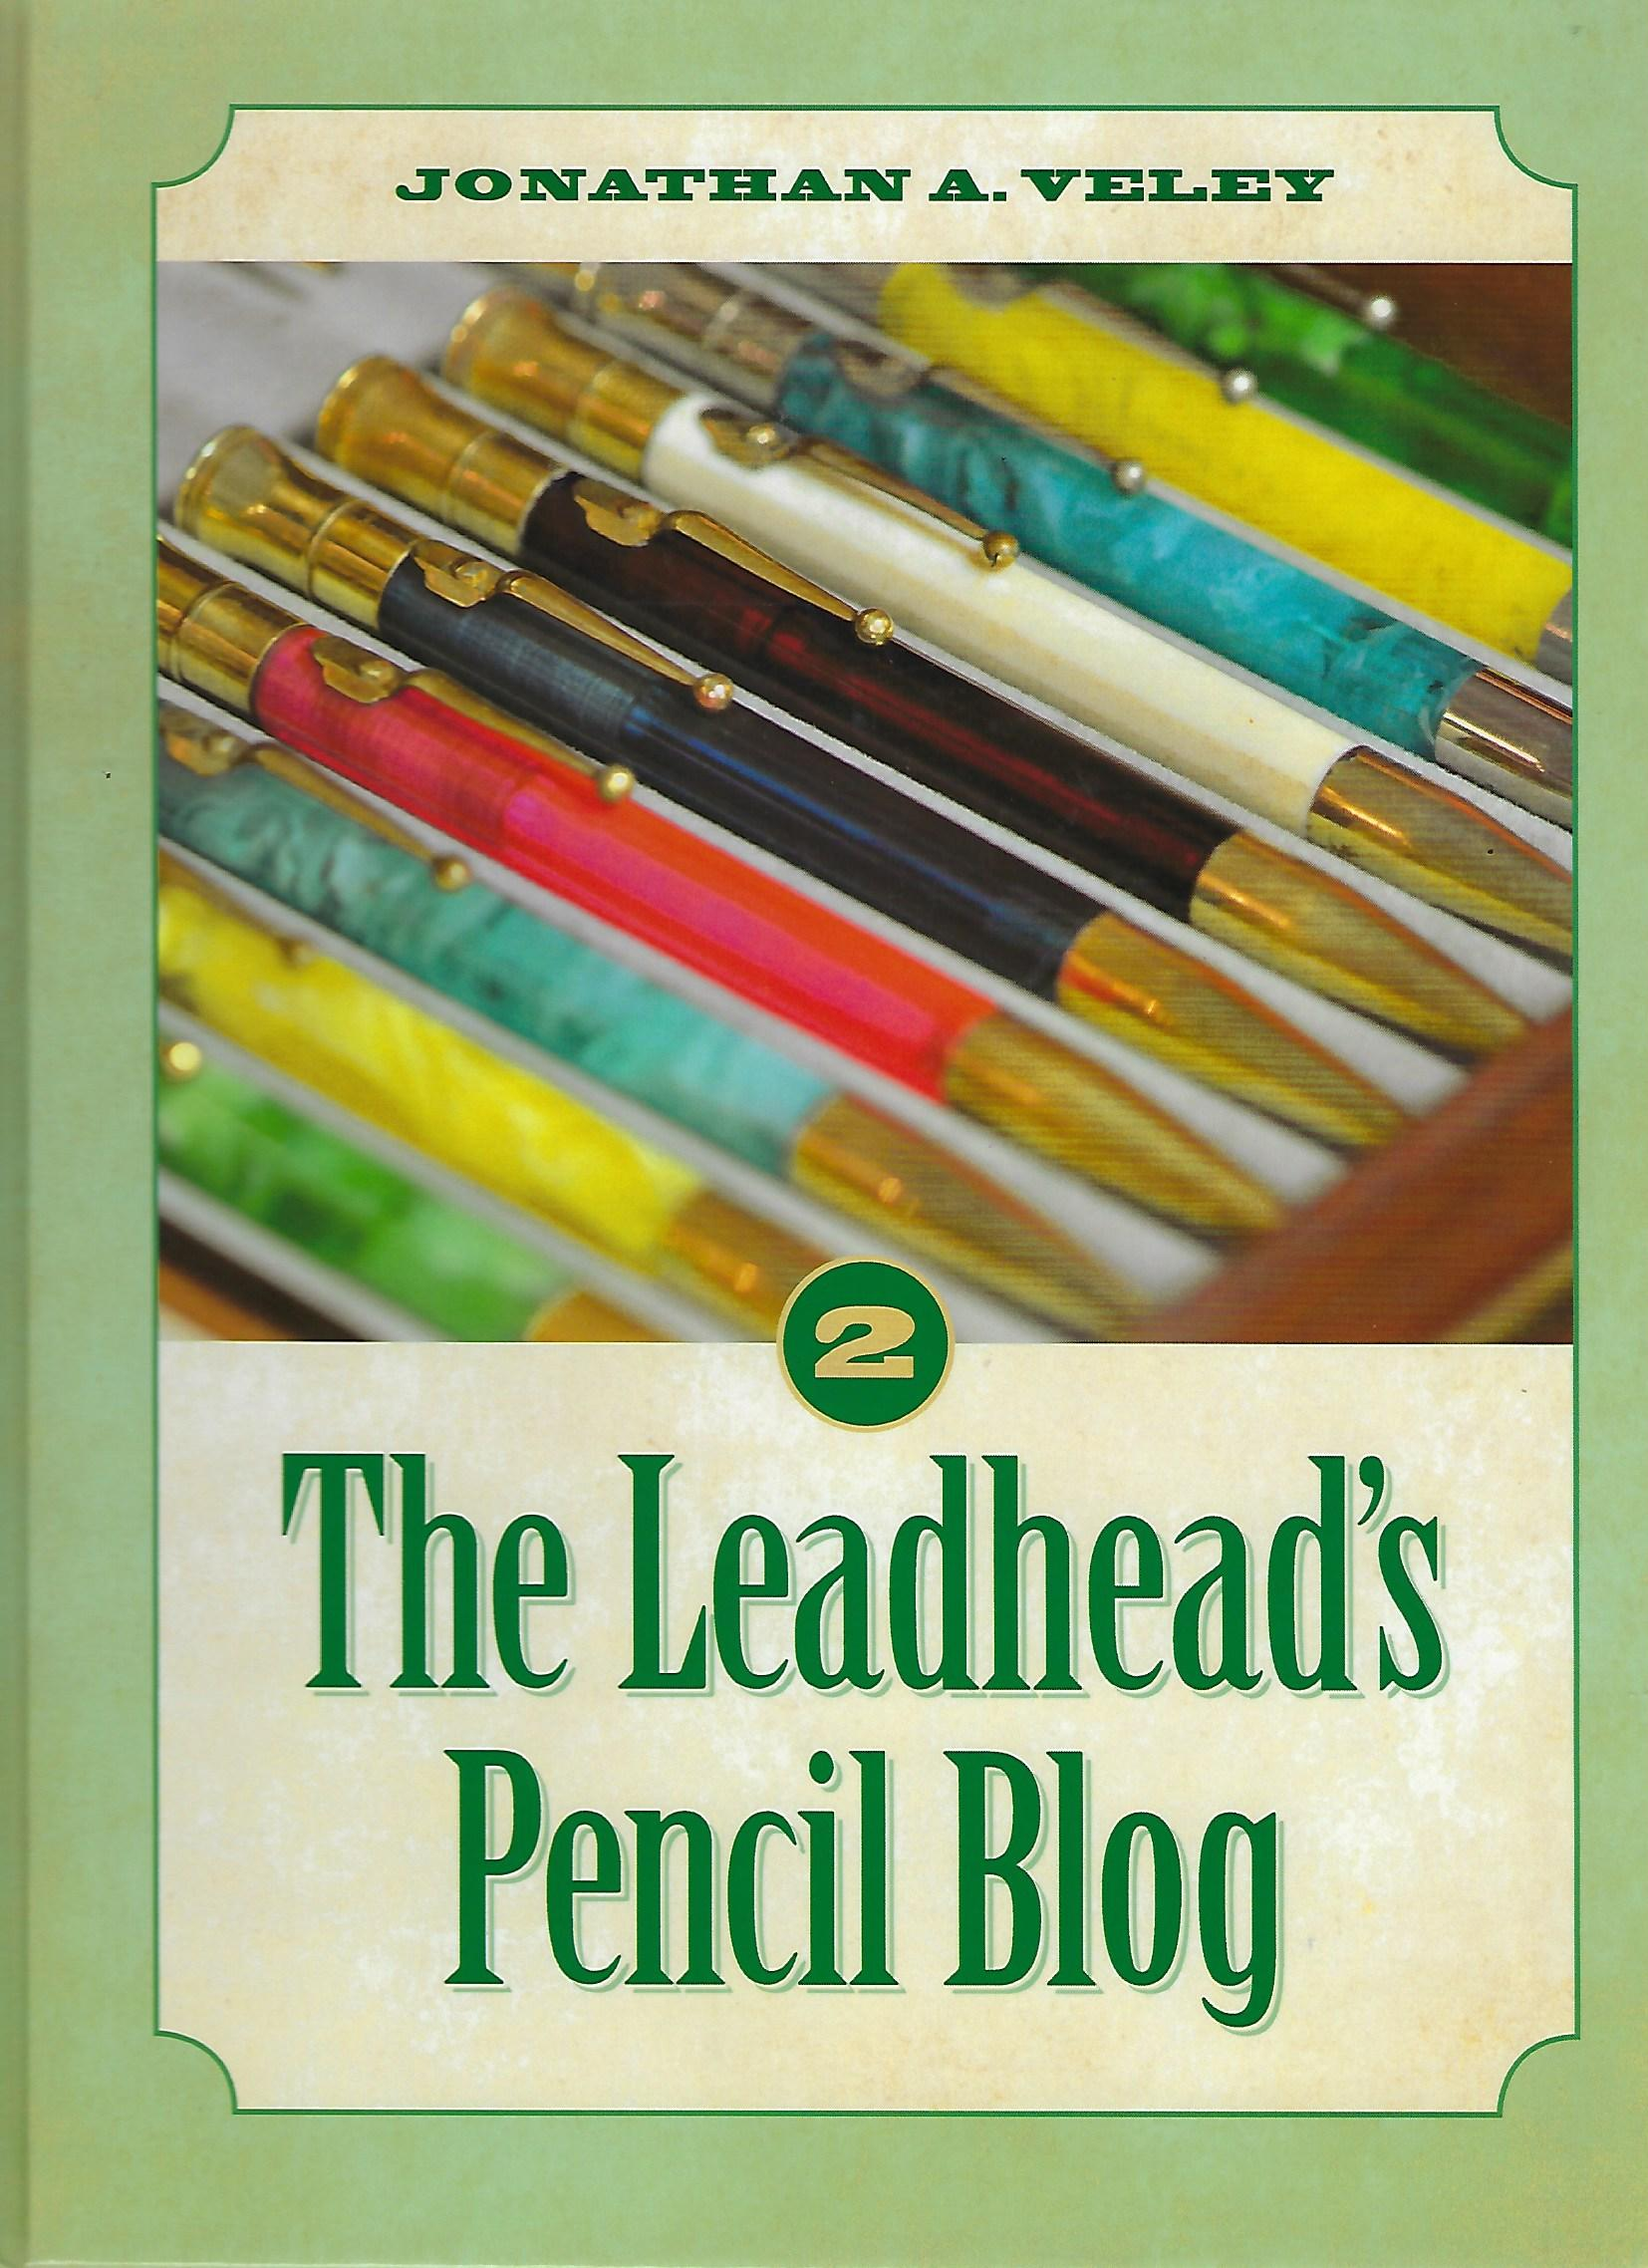 The Leadhead's Pencil Blog (2)